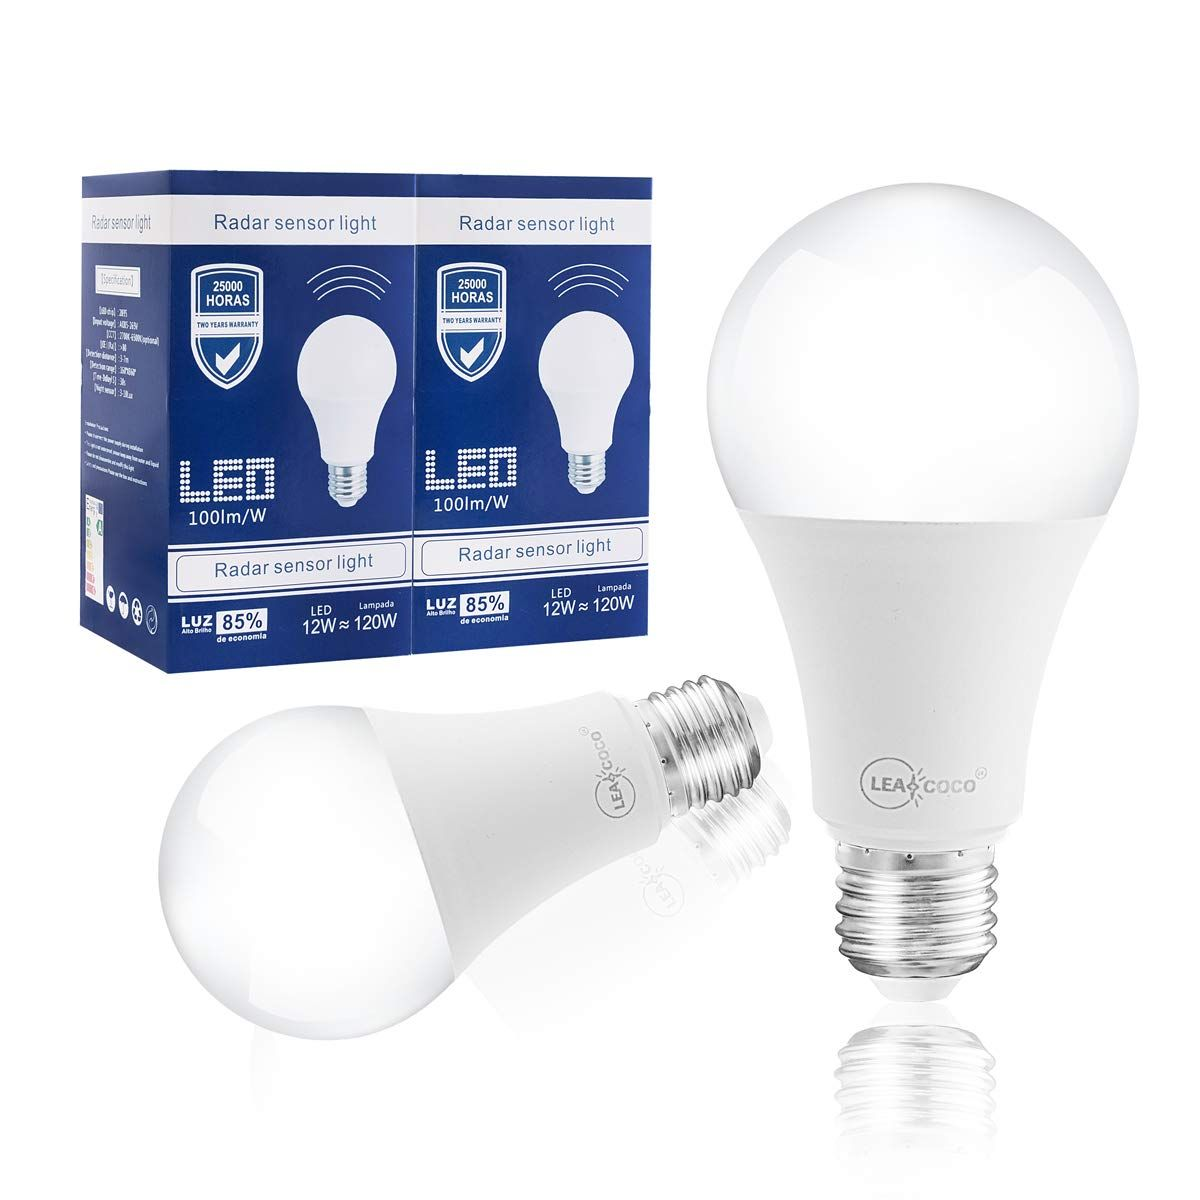 Motion Sensor Light Bulb 12w Dusk To Dawn Lighting Lamp 120w Equivalent Smart Bulb Radar Motion Sensor Light Bulbs With Images Light Sensor Motion Sensor Lights Light Bulb